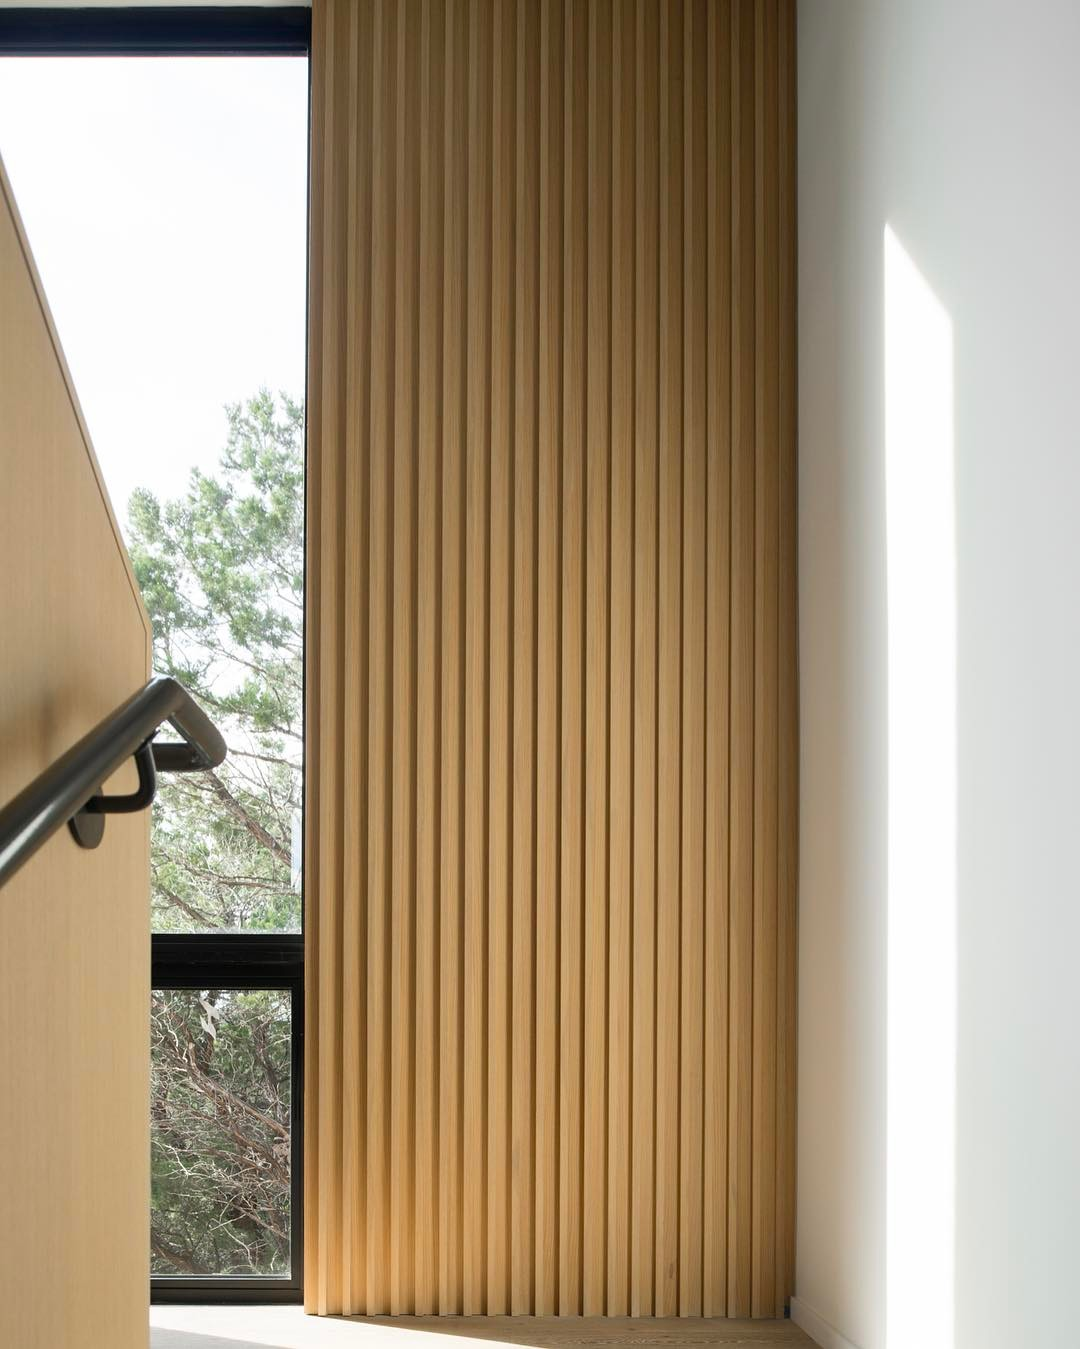 Got to love the white oak panel details Designed by A-Parallel Architecture. Built by @foursquarebuilders Photo by @redpantsstudio